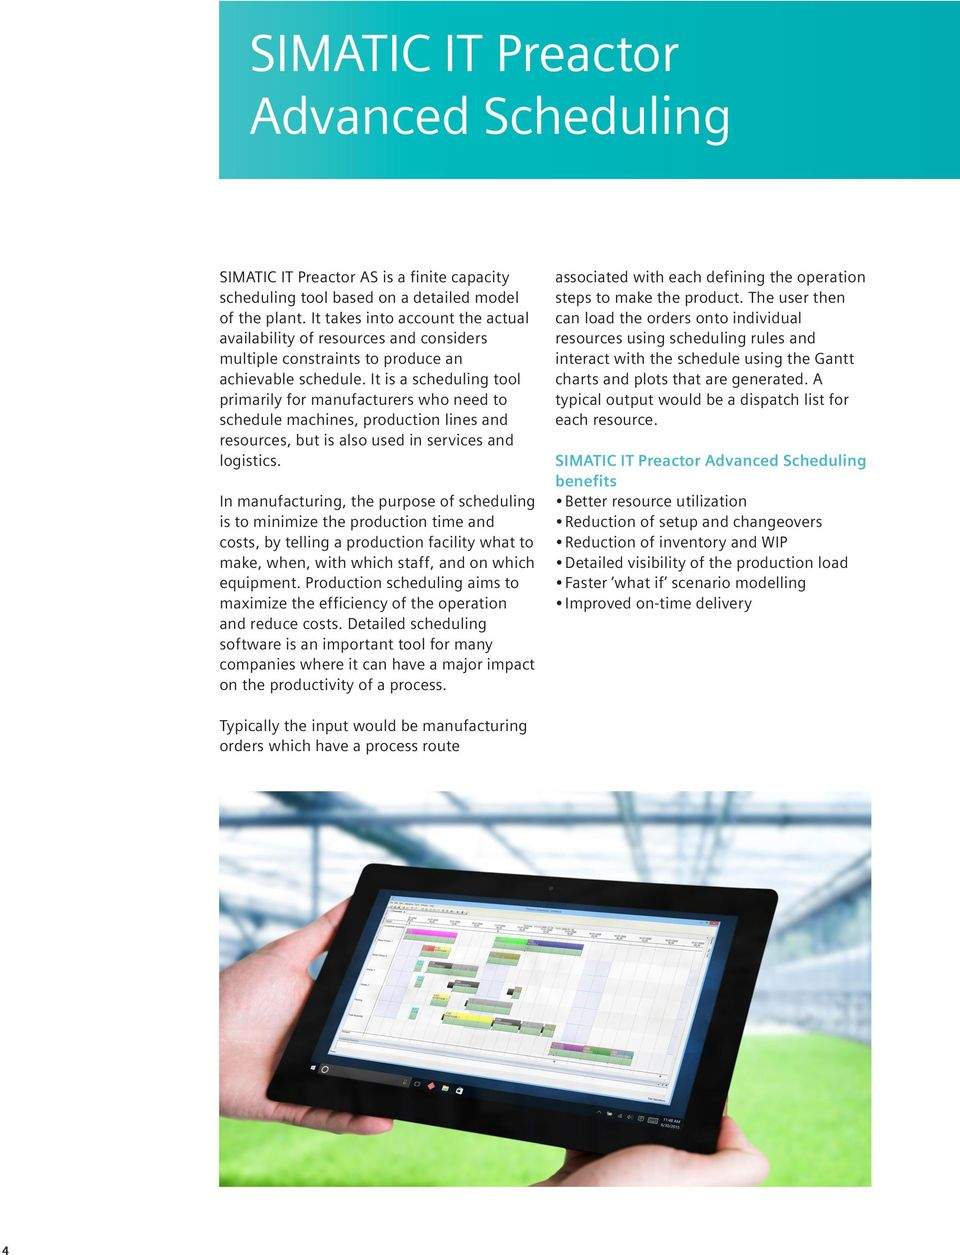 Siemens Plm Software Simatic It Preactor Aps Advanced